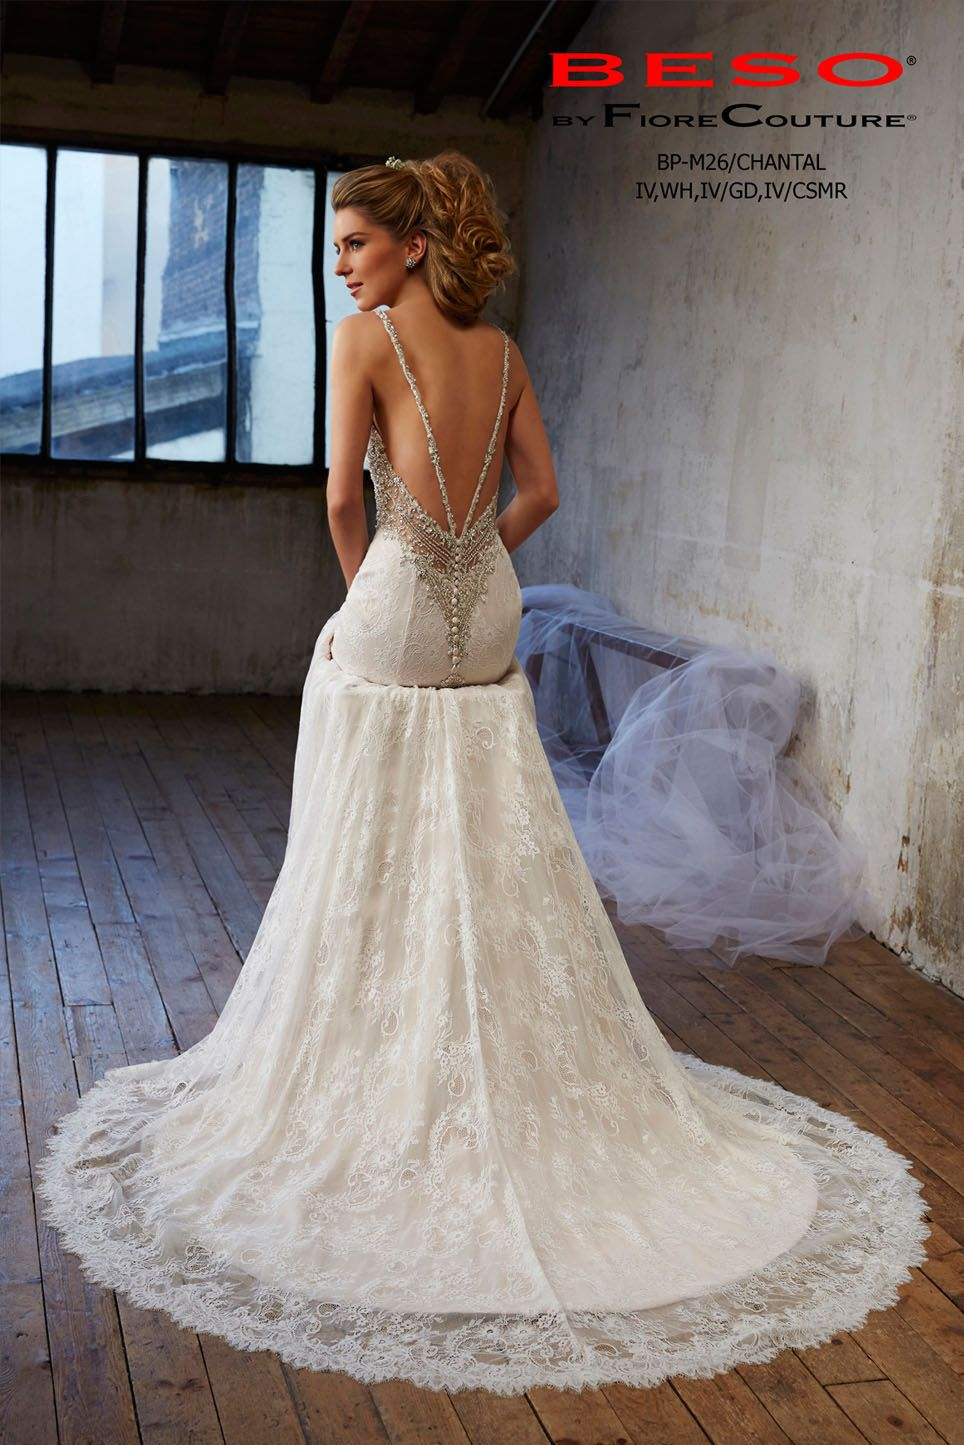 Fiore Couture Chantal Wedding Gown Fiore Couture In 2019